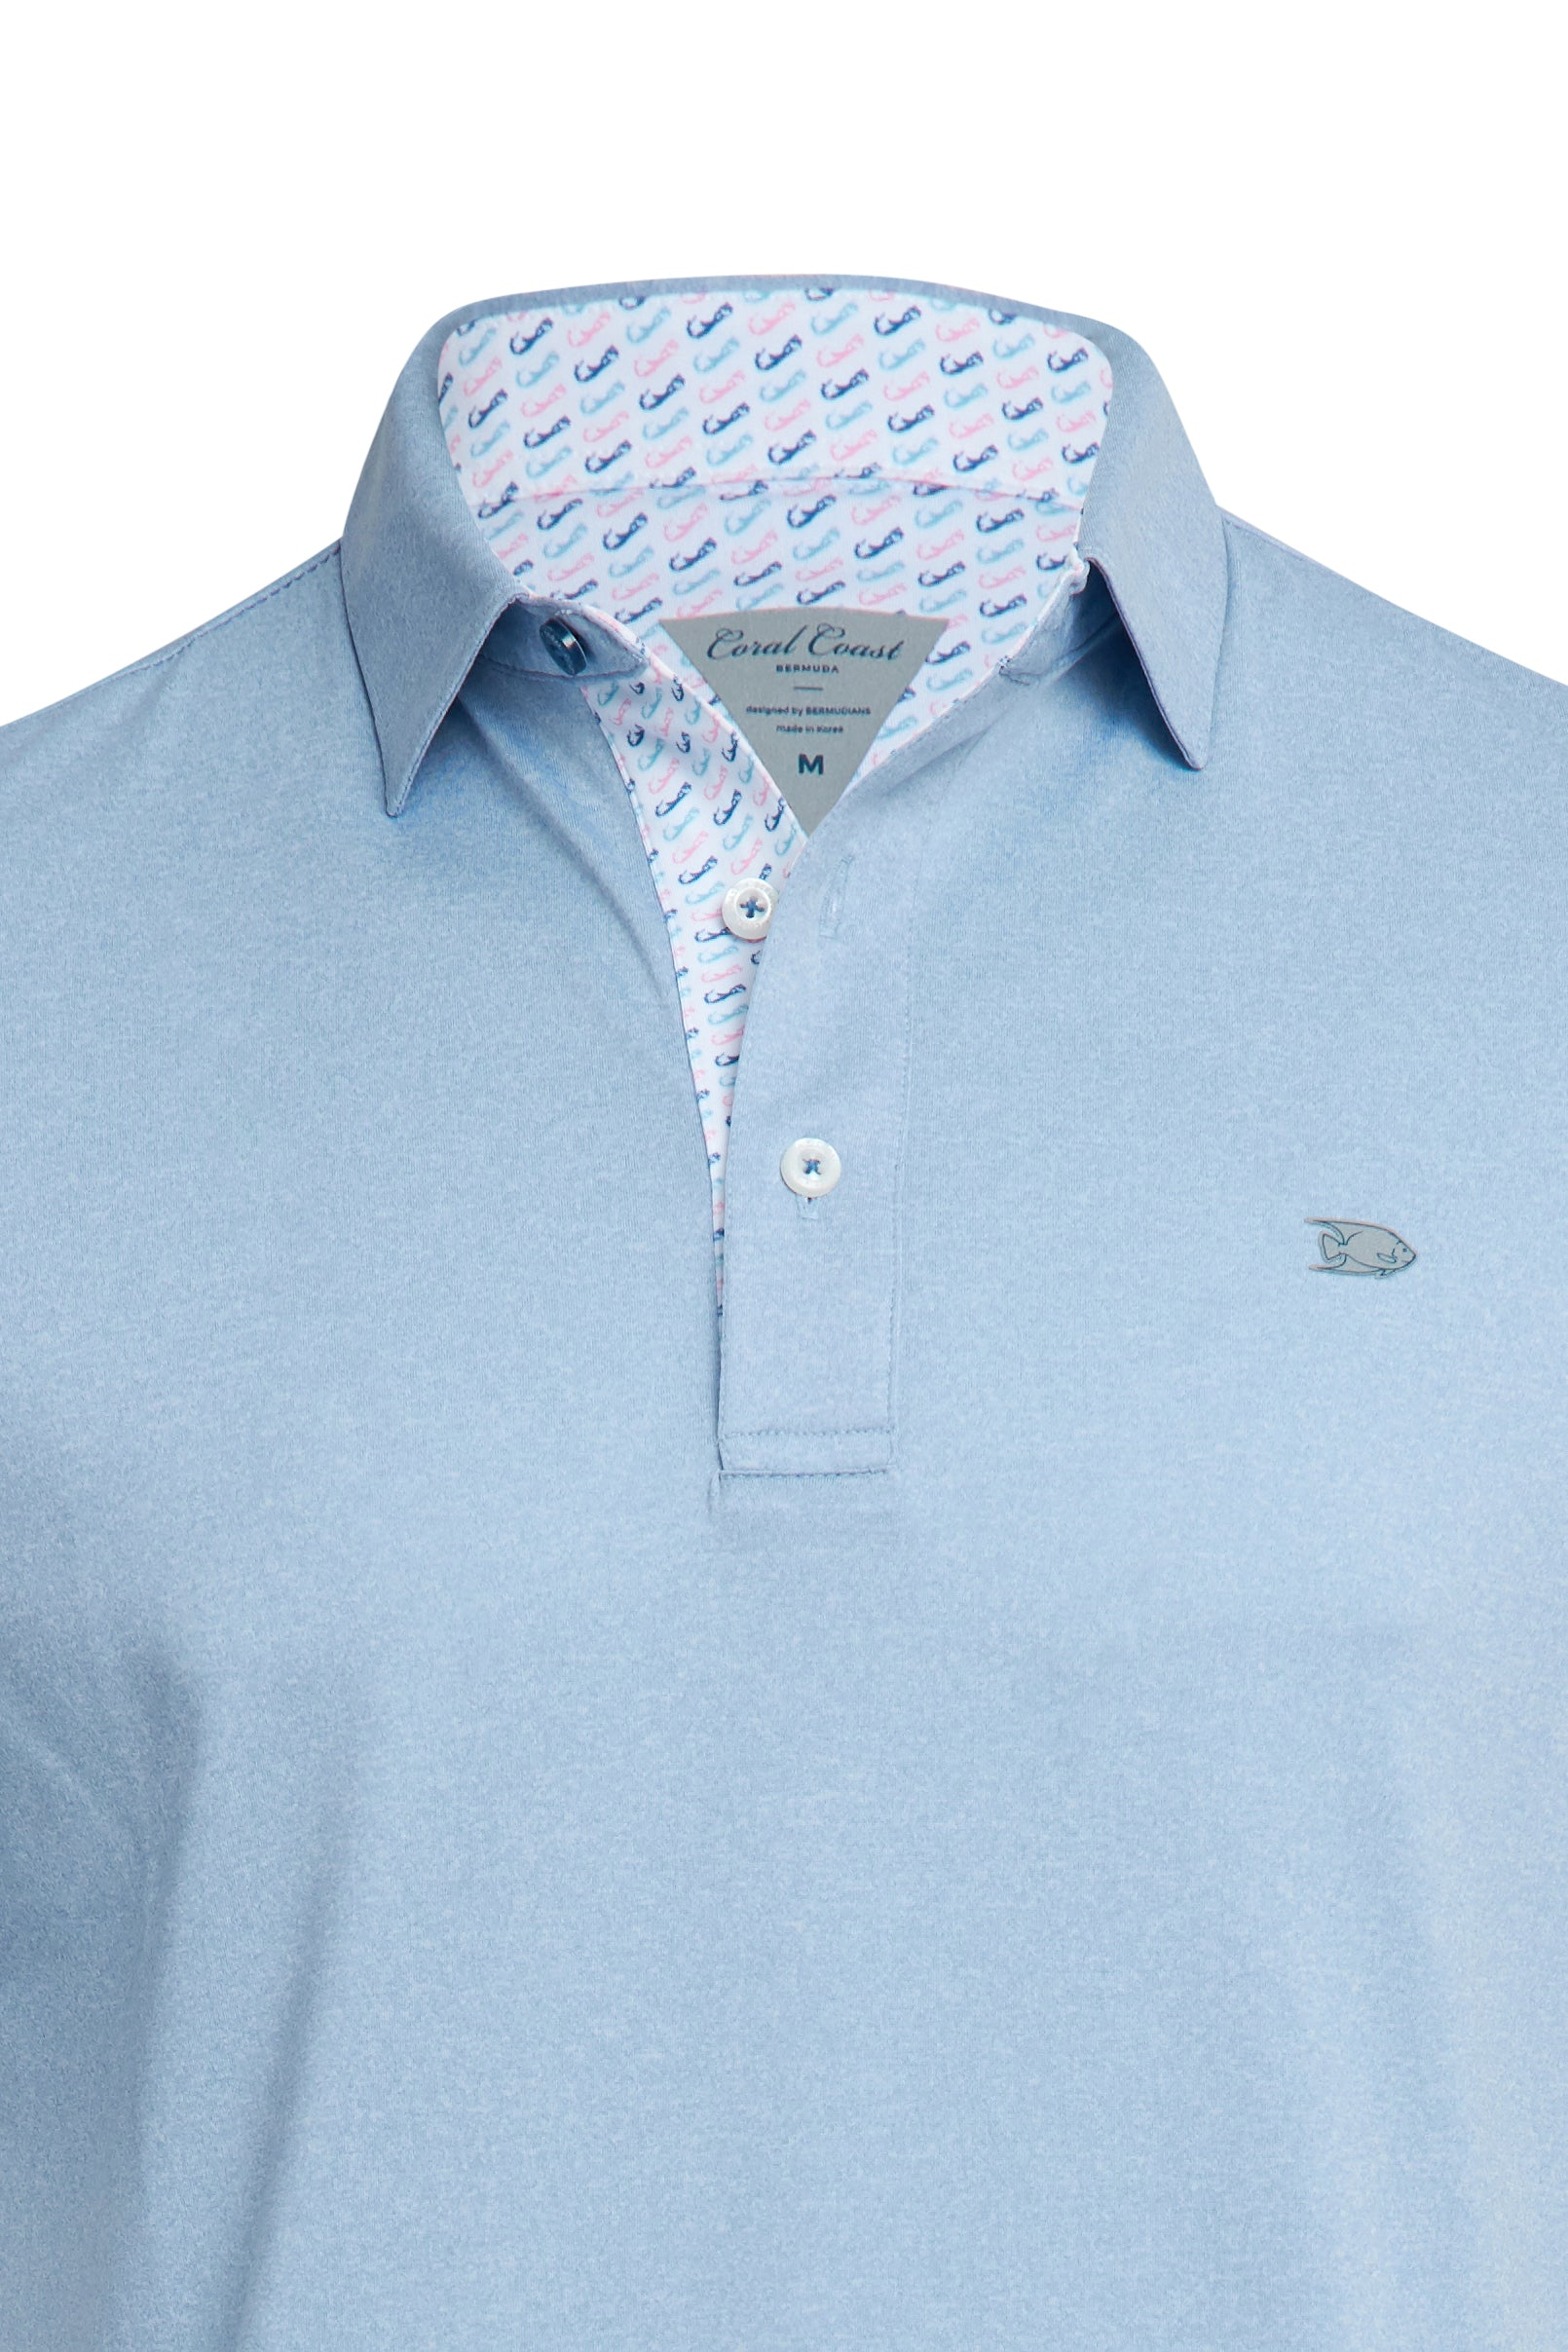 HEATHERED BLUE PERFORMANCE POLO